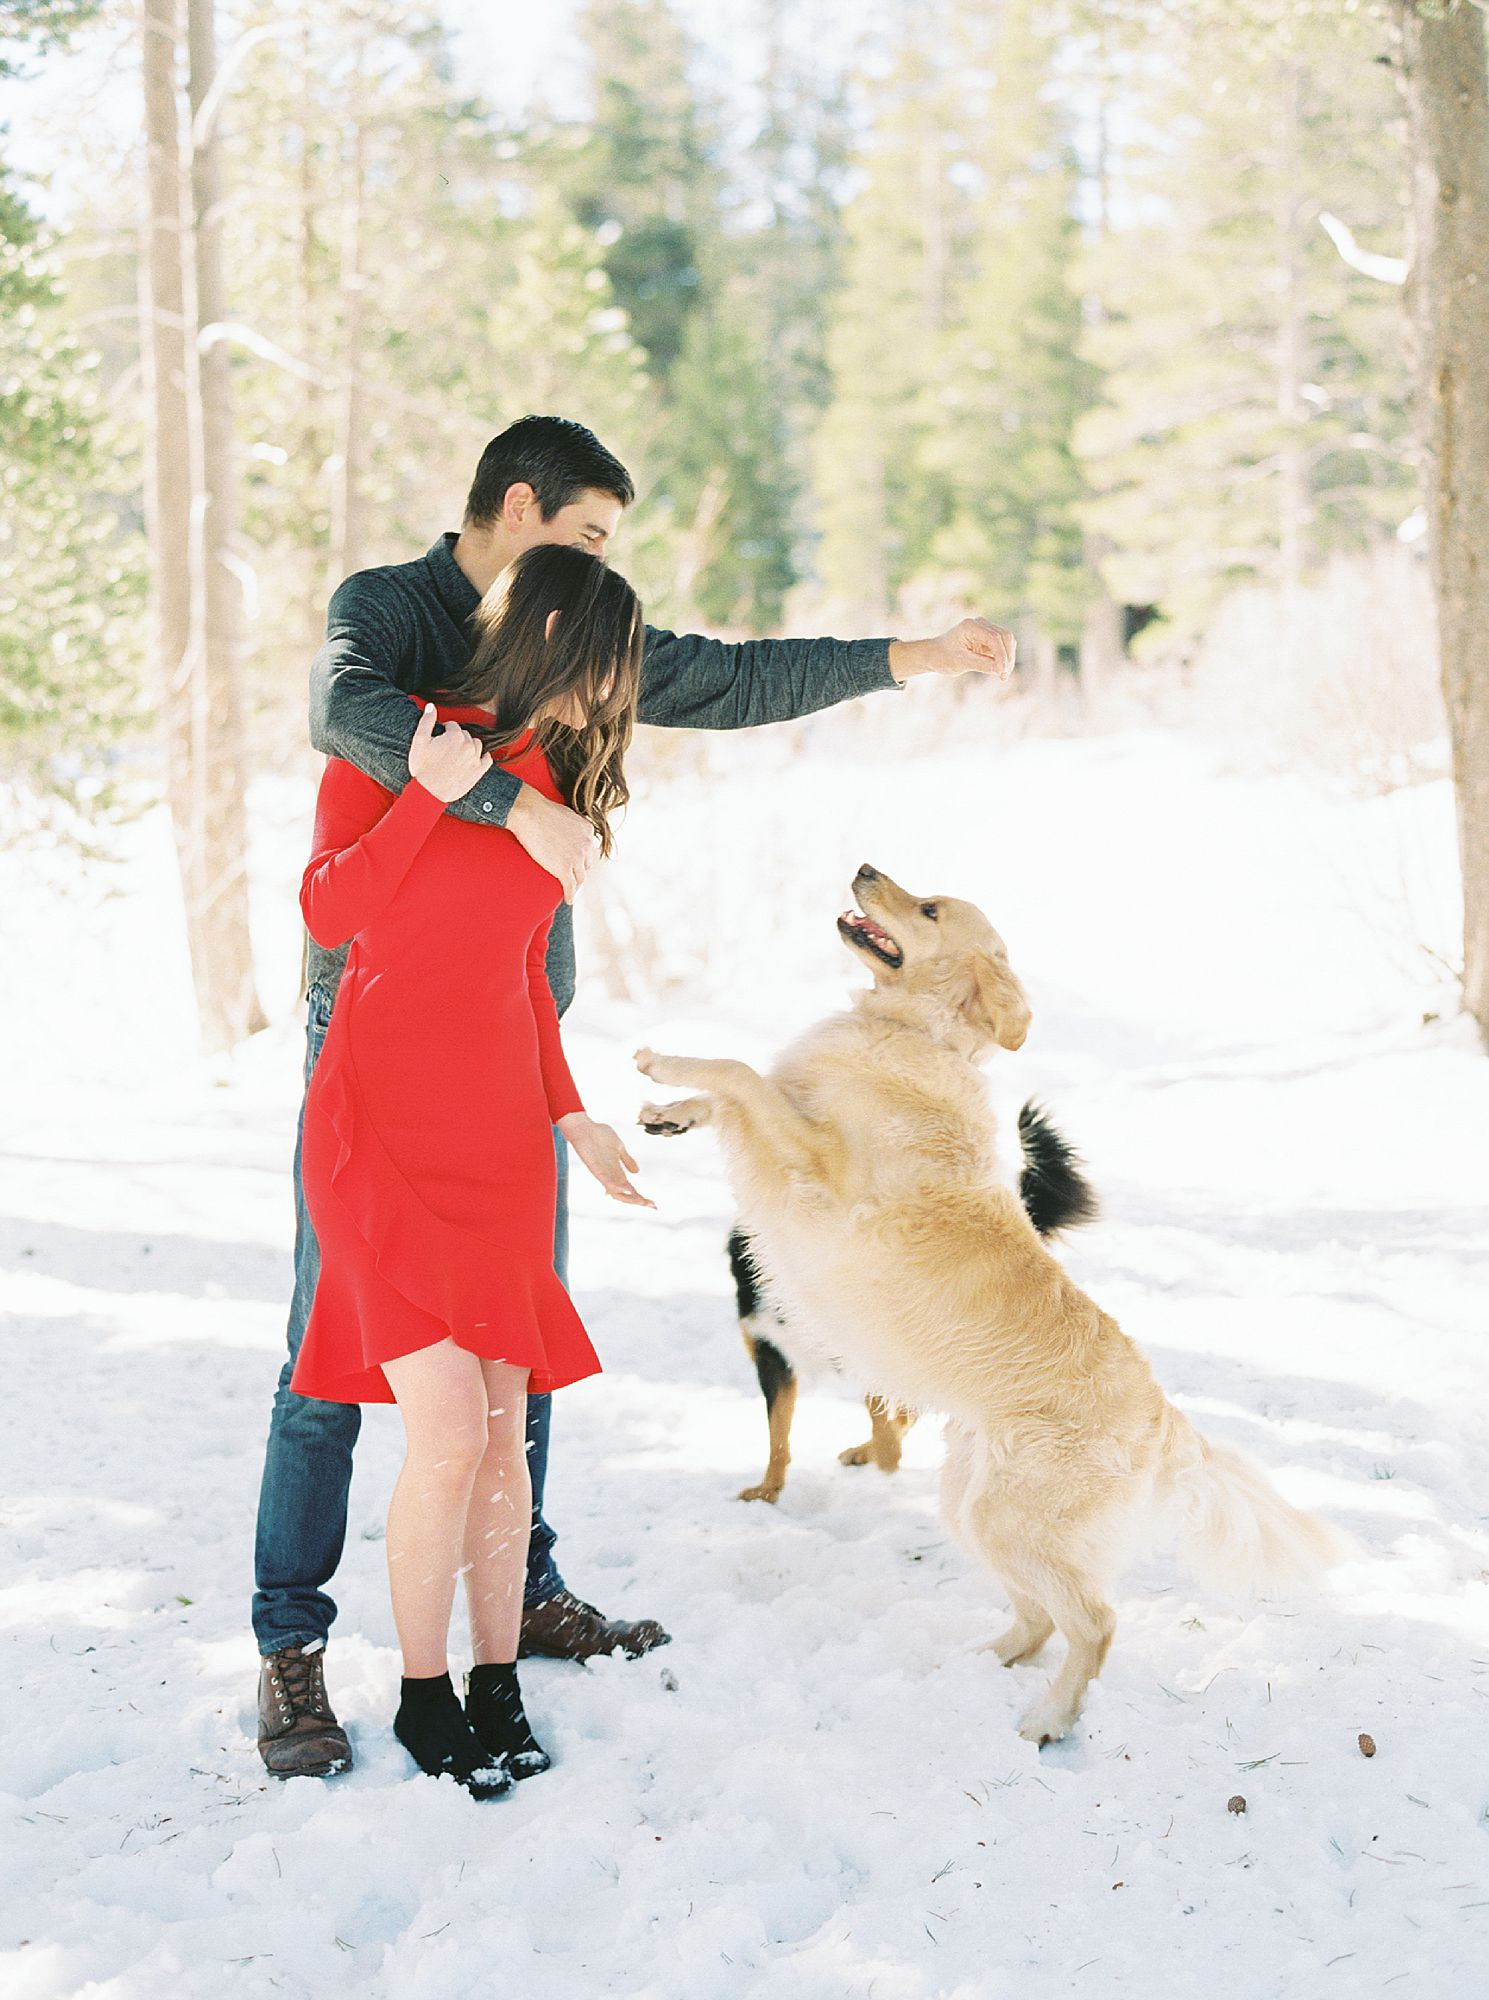 Snowy Tahoe Engagement Session - Alex and Kevin - Ashley Baumgartner - Tahoe Engagement Session - Tahoe Wedding Photographer - Tahoe Engagement Photos - Snow Engagement Photos_0032.jpg